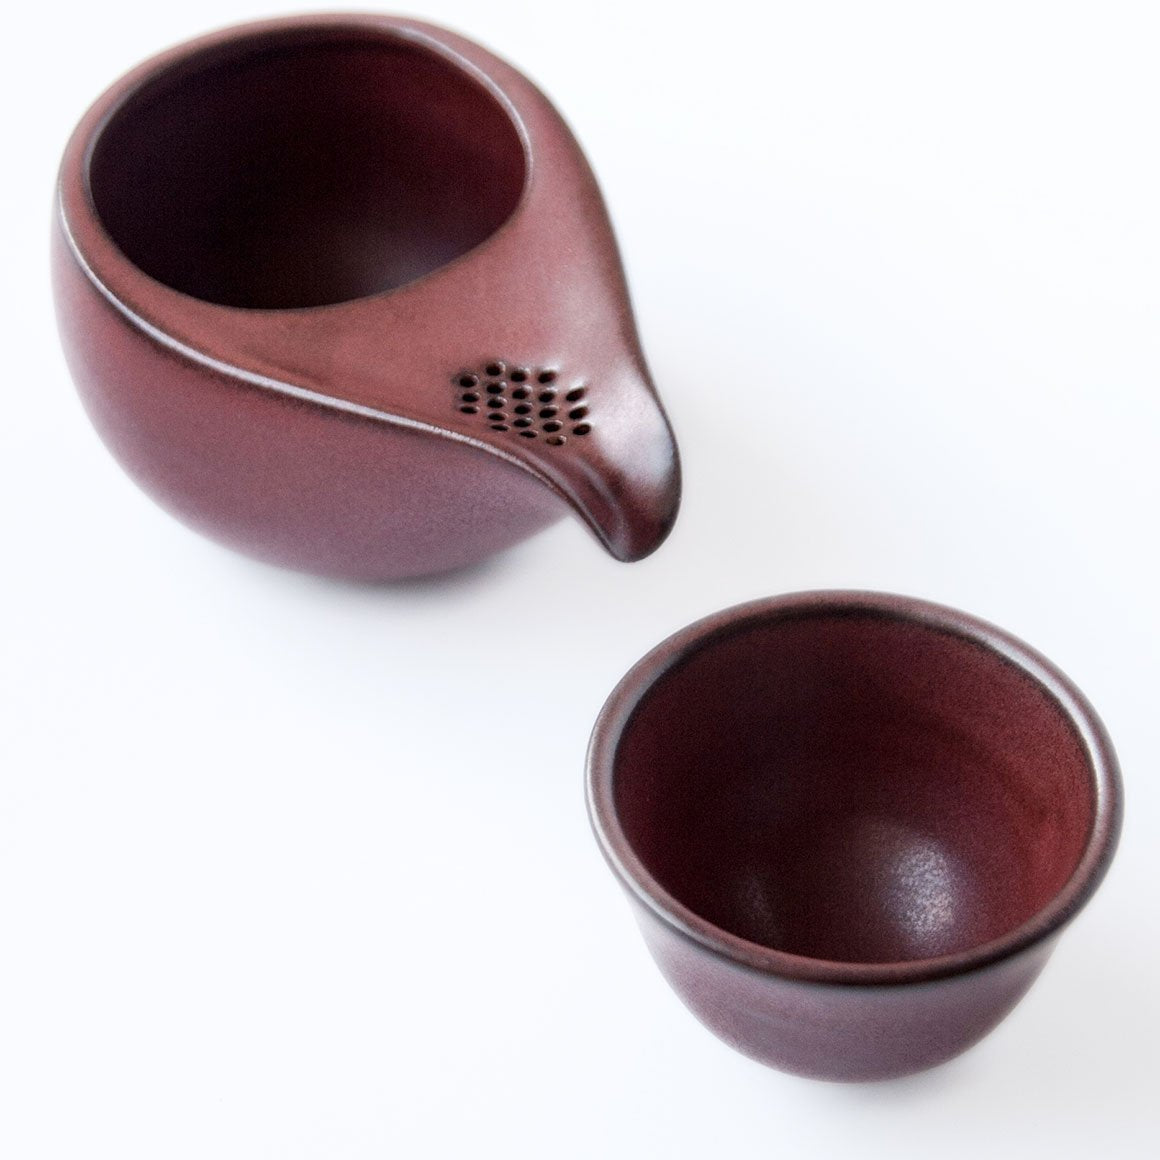 Fujisou Dew Drop Tea Set For One With Cup Brown